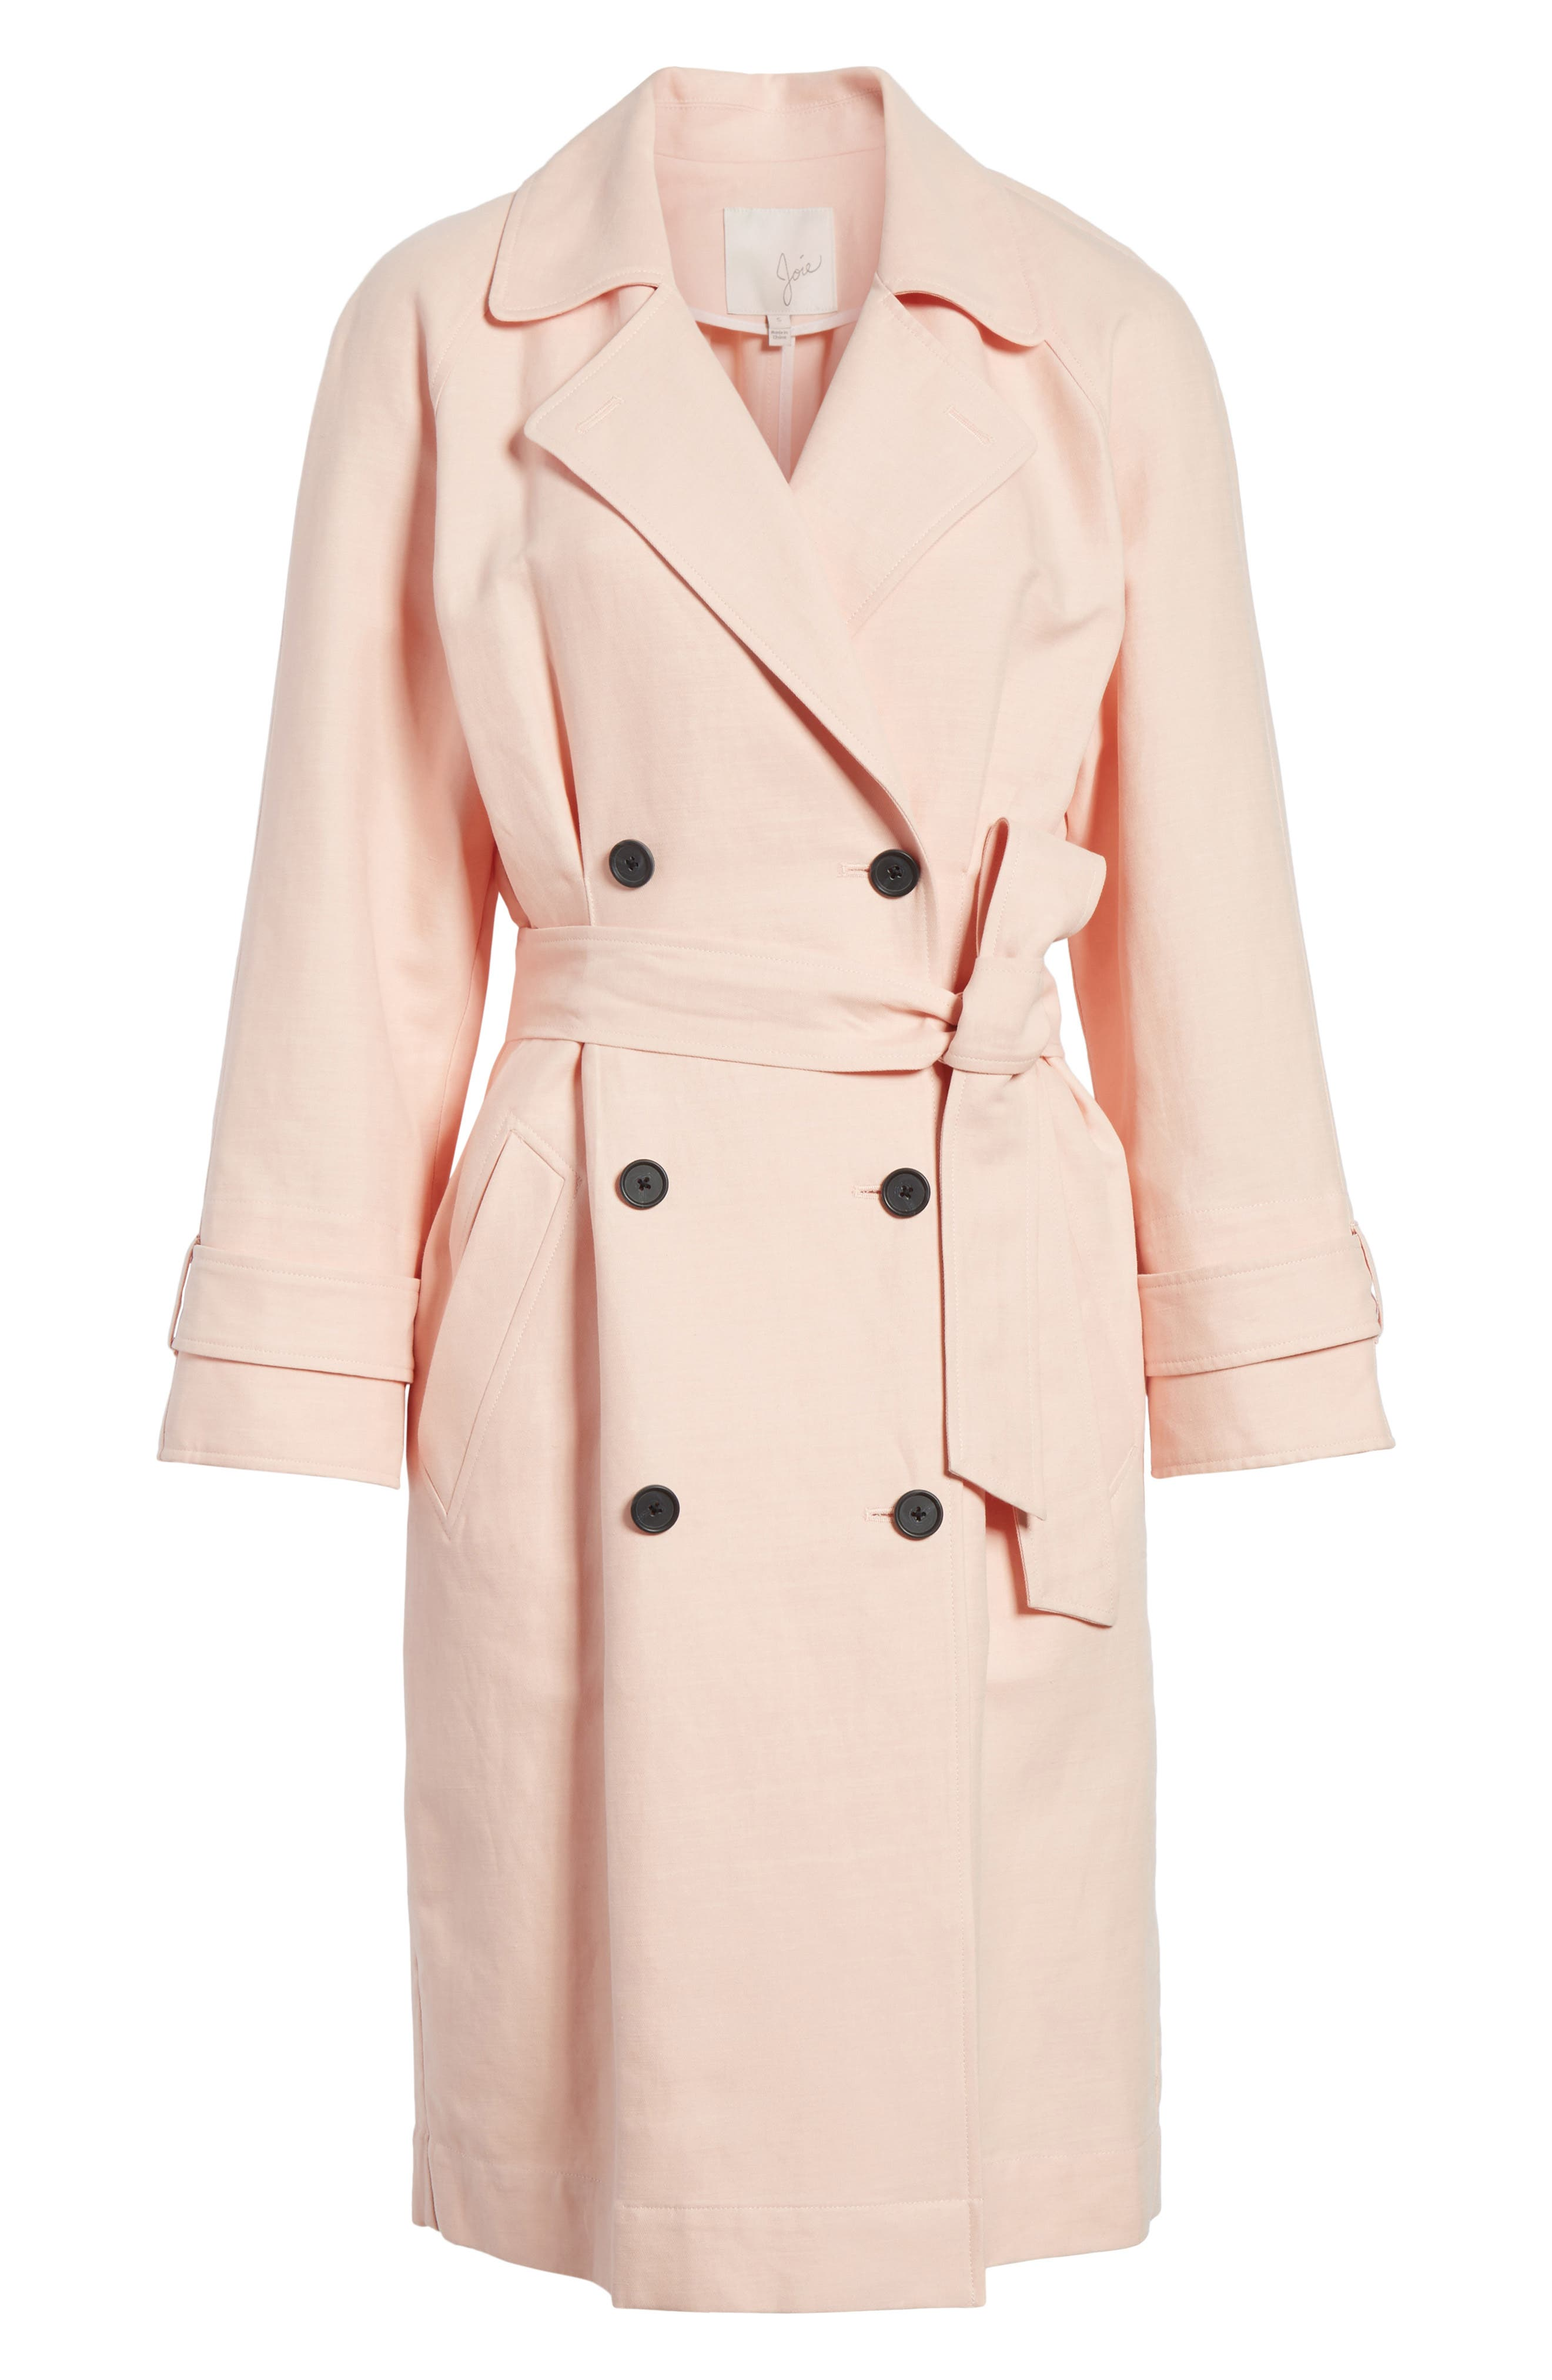 Damonica Trench Coat,                             Alternate thumbnail 6, color,                             Washed Rose